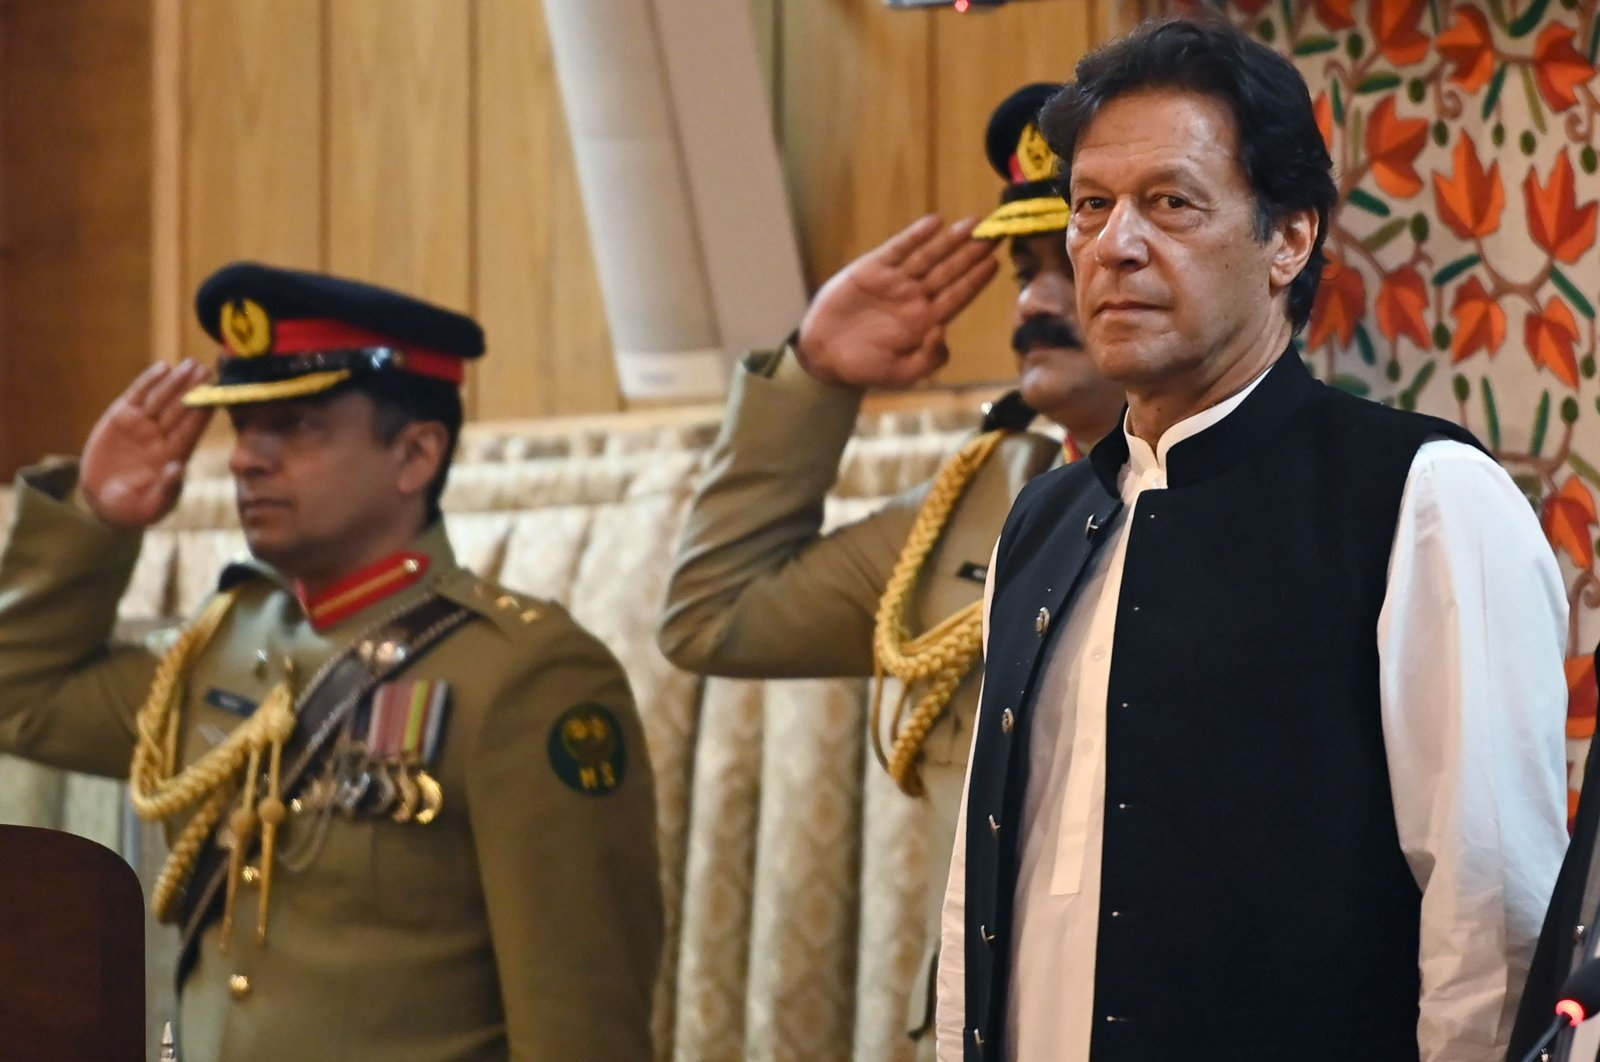 Pakistan's Prime Minister Imran Khan (R) listens to the national anthem as he arrives at the legislative assembly in Muzaffarabad, the capital of Pakistan-controlled Kashmir, Aug. 14, 2019. (AFP Photo)